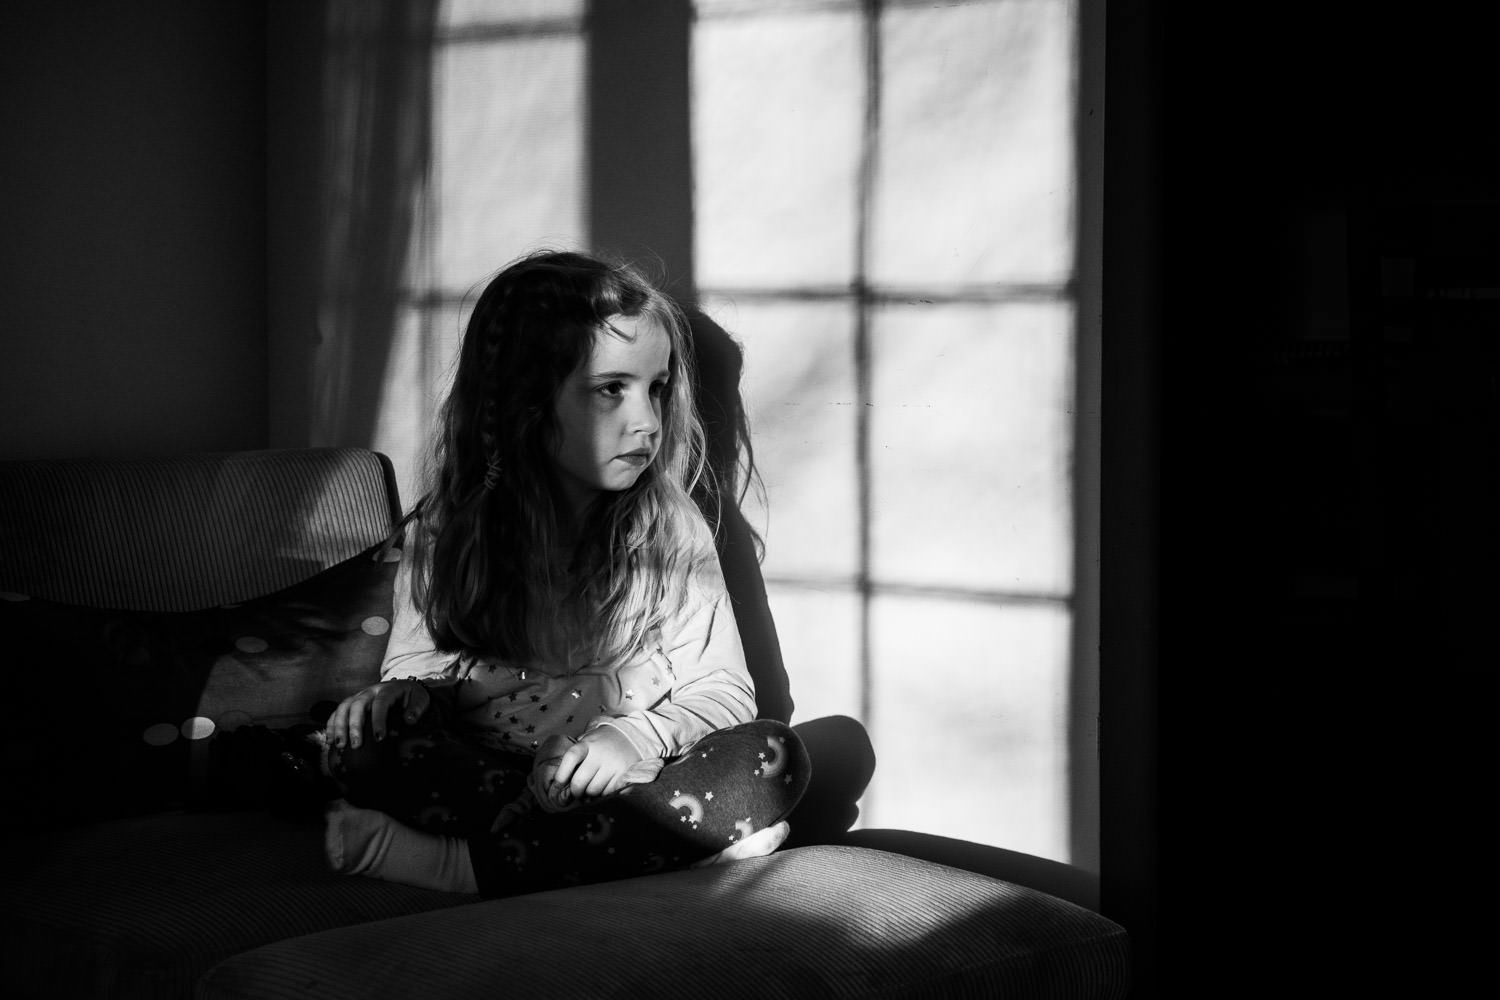 A little girl sits in window light and shadow.